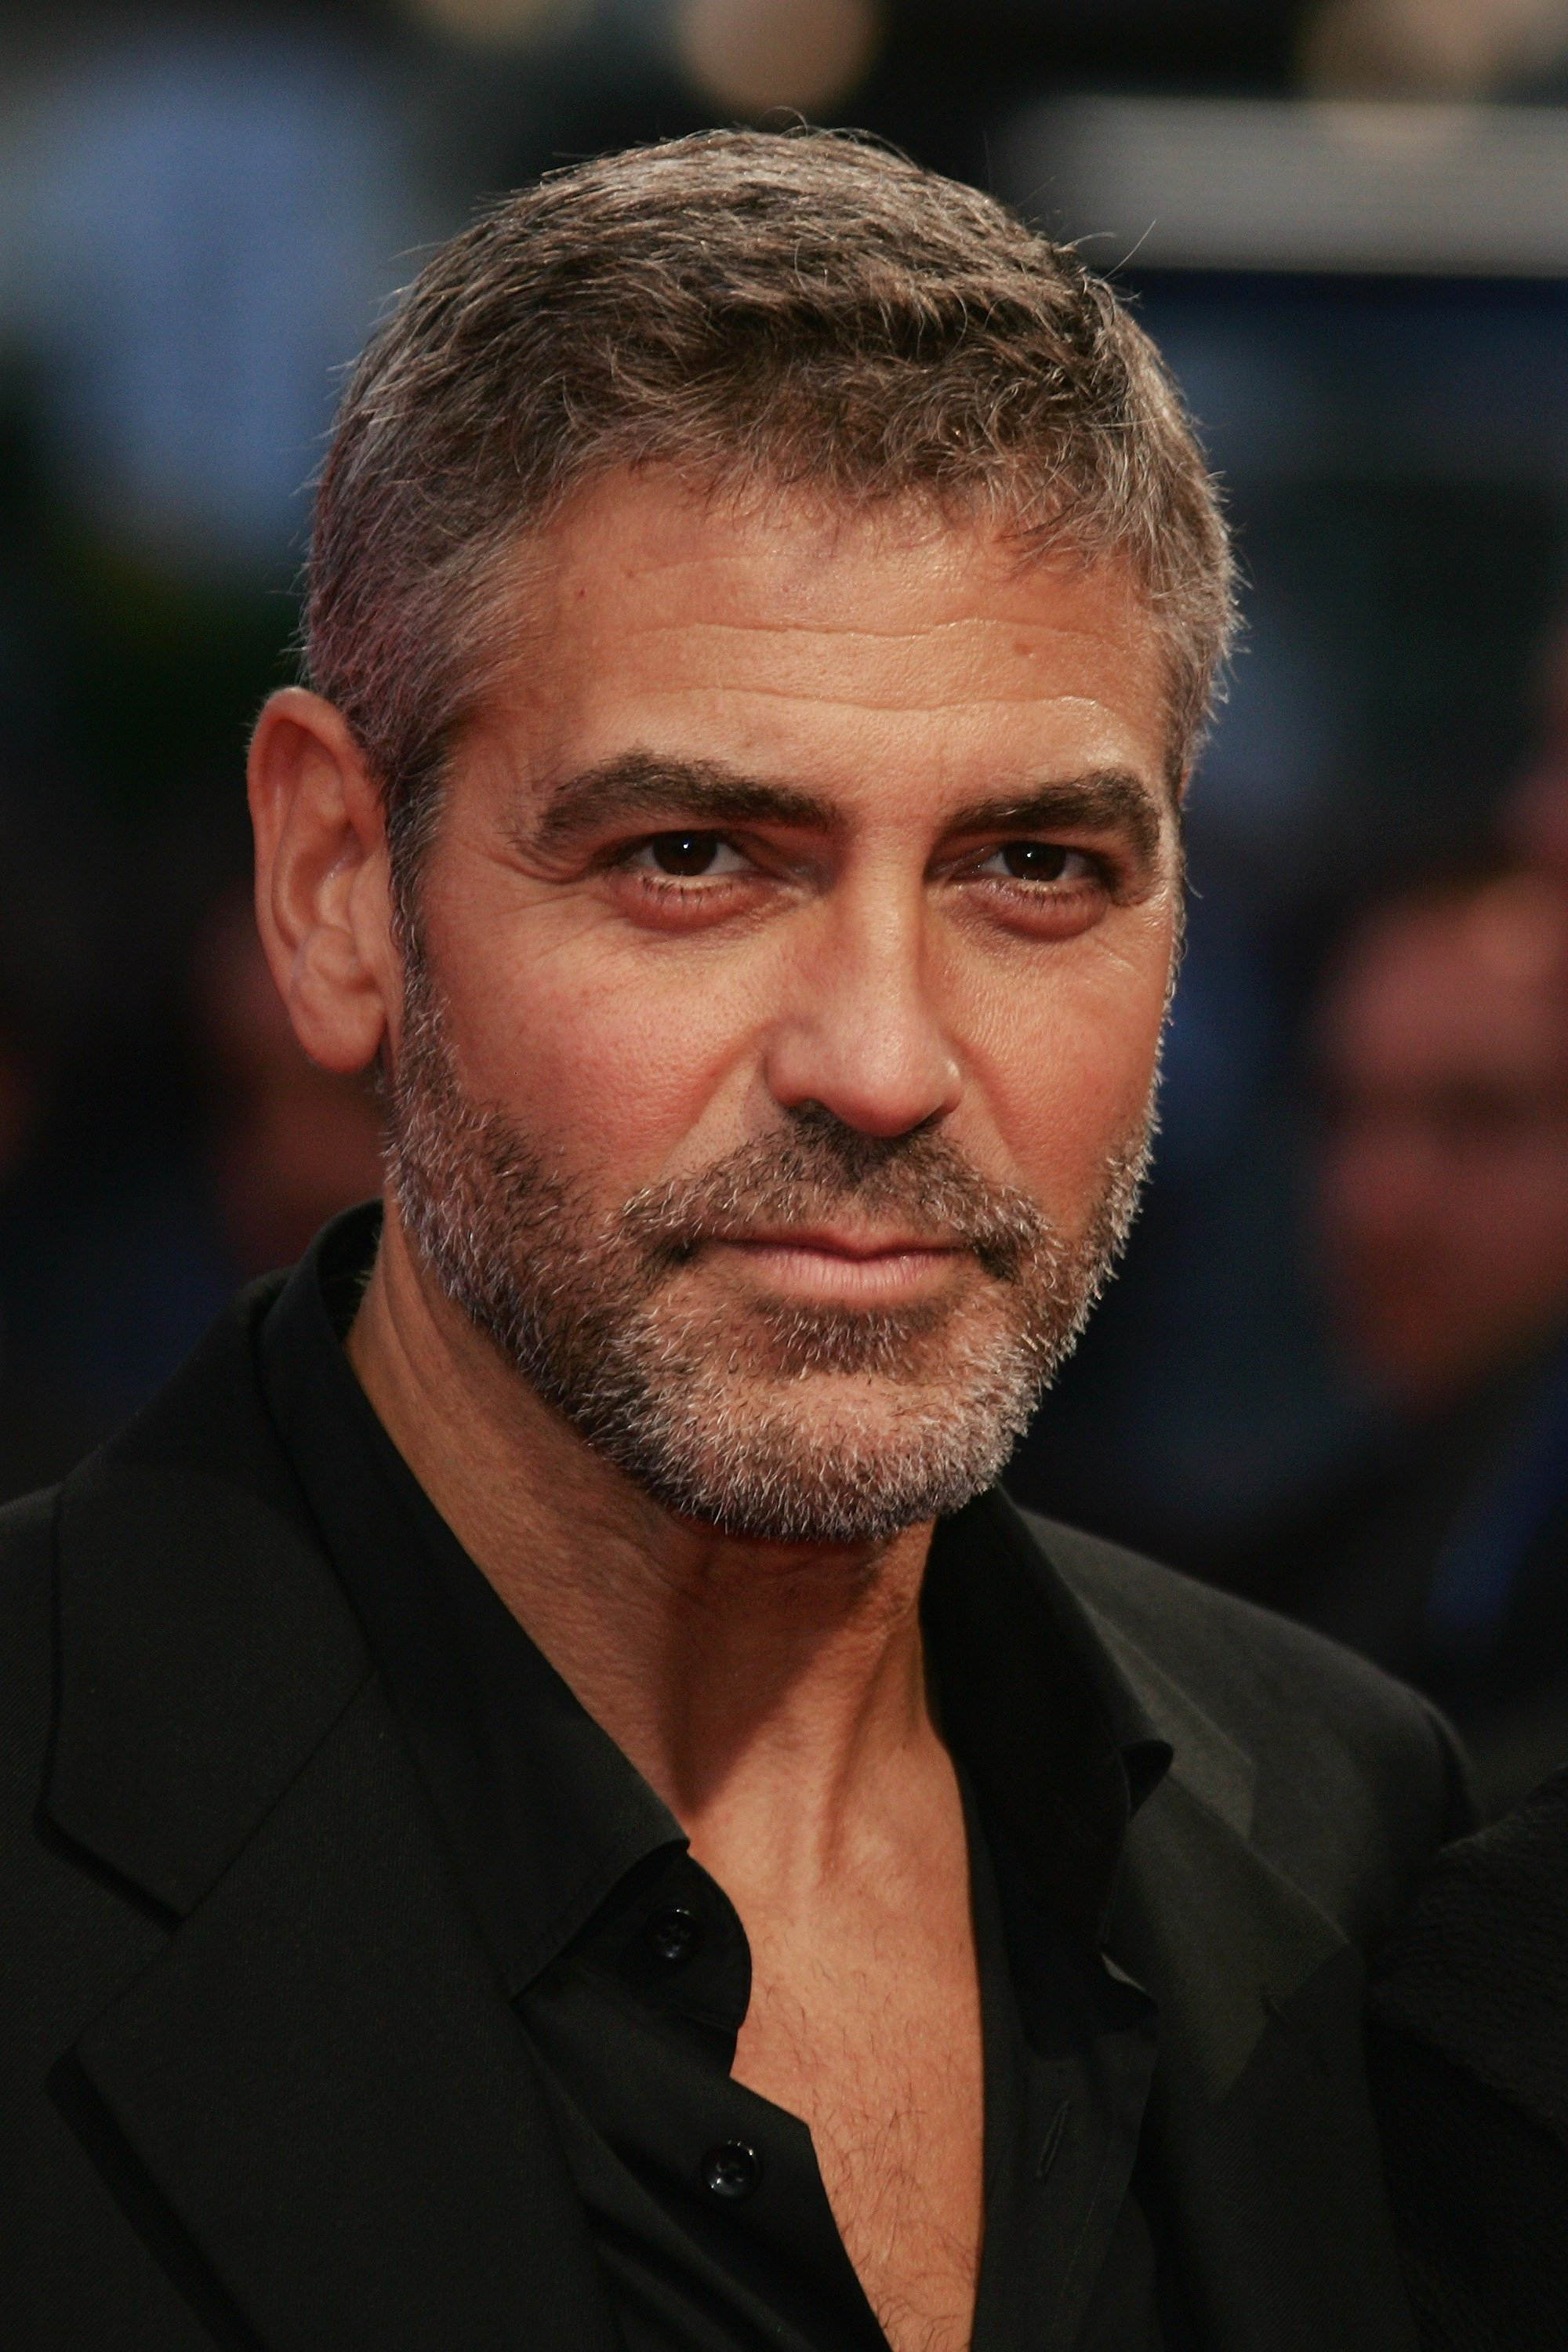 Image Credits: Getty Images / Francois Durand | U.S. actor George Clooney poses as he arrives to attend the premiere of Michael Clayton during the 33rd Deauville American Film Festival, on September 2, 2007 in Deauville, France.